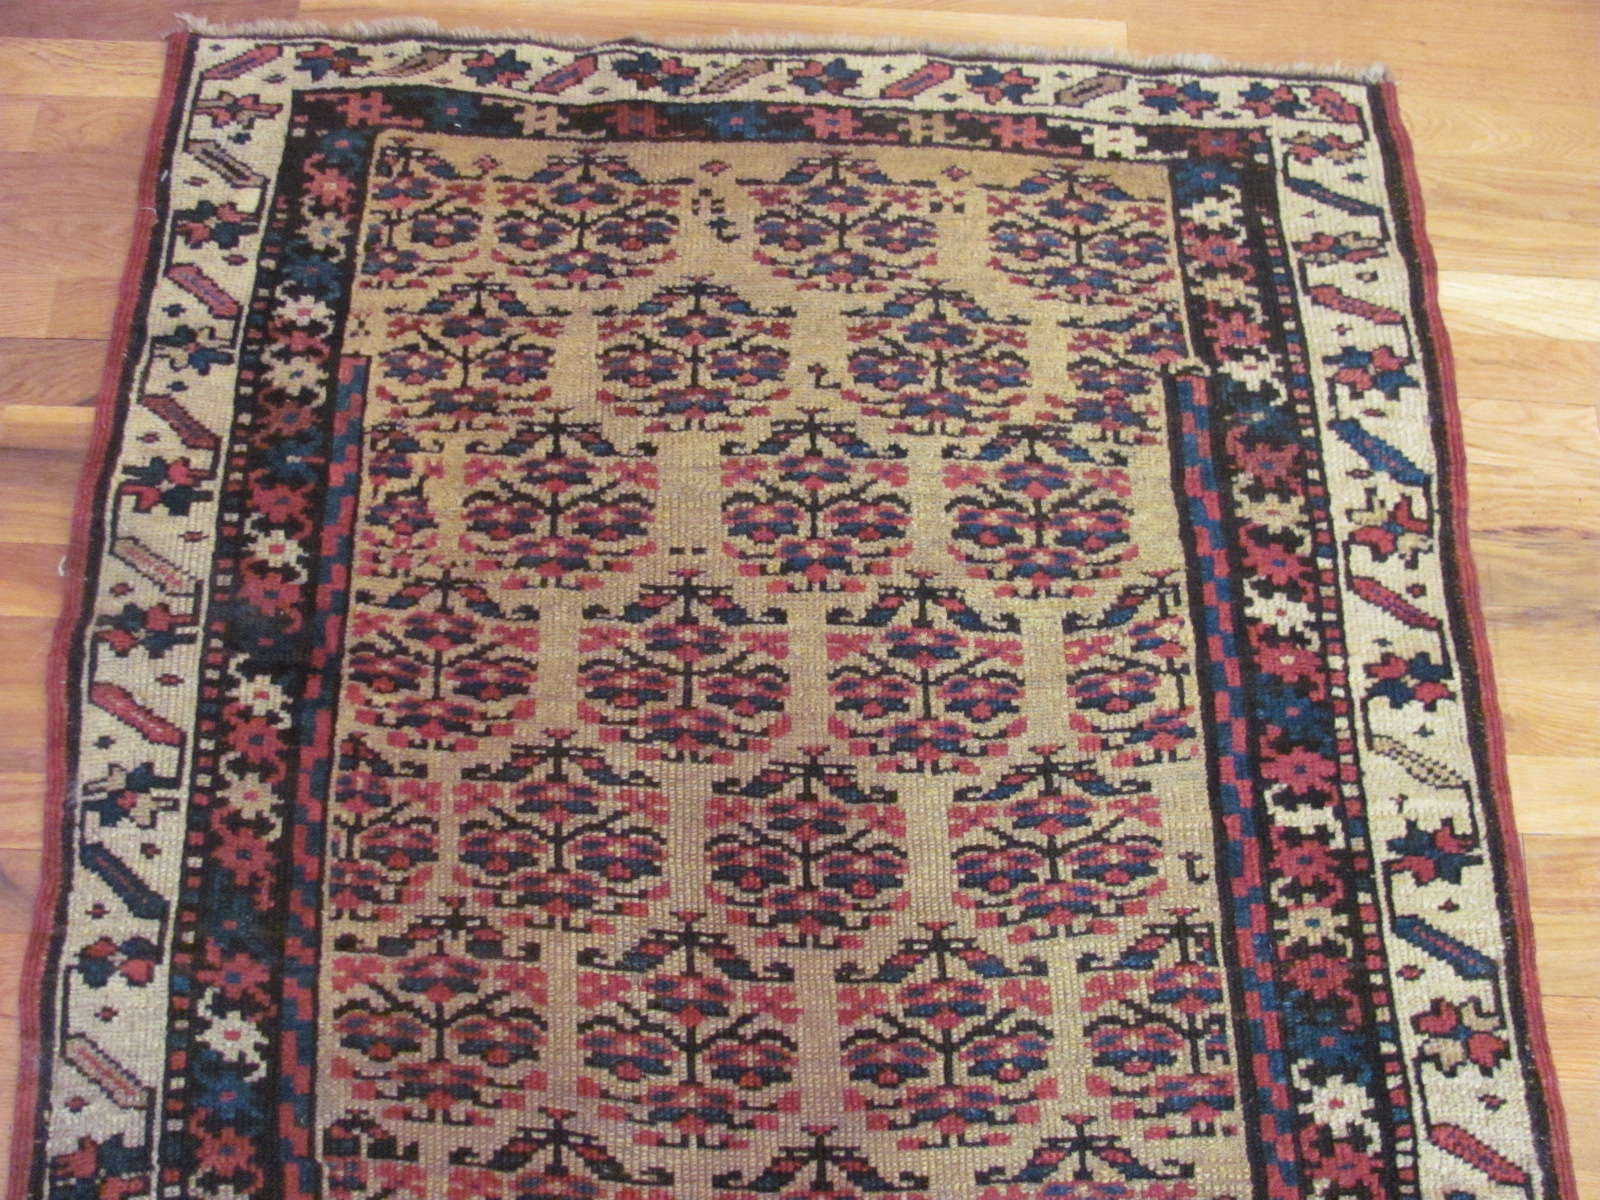 24448 antique Persian Kurd runner rug 3,4x10 -1